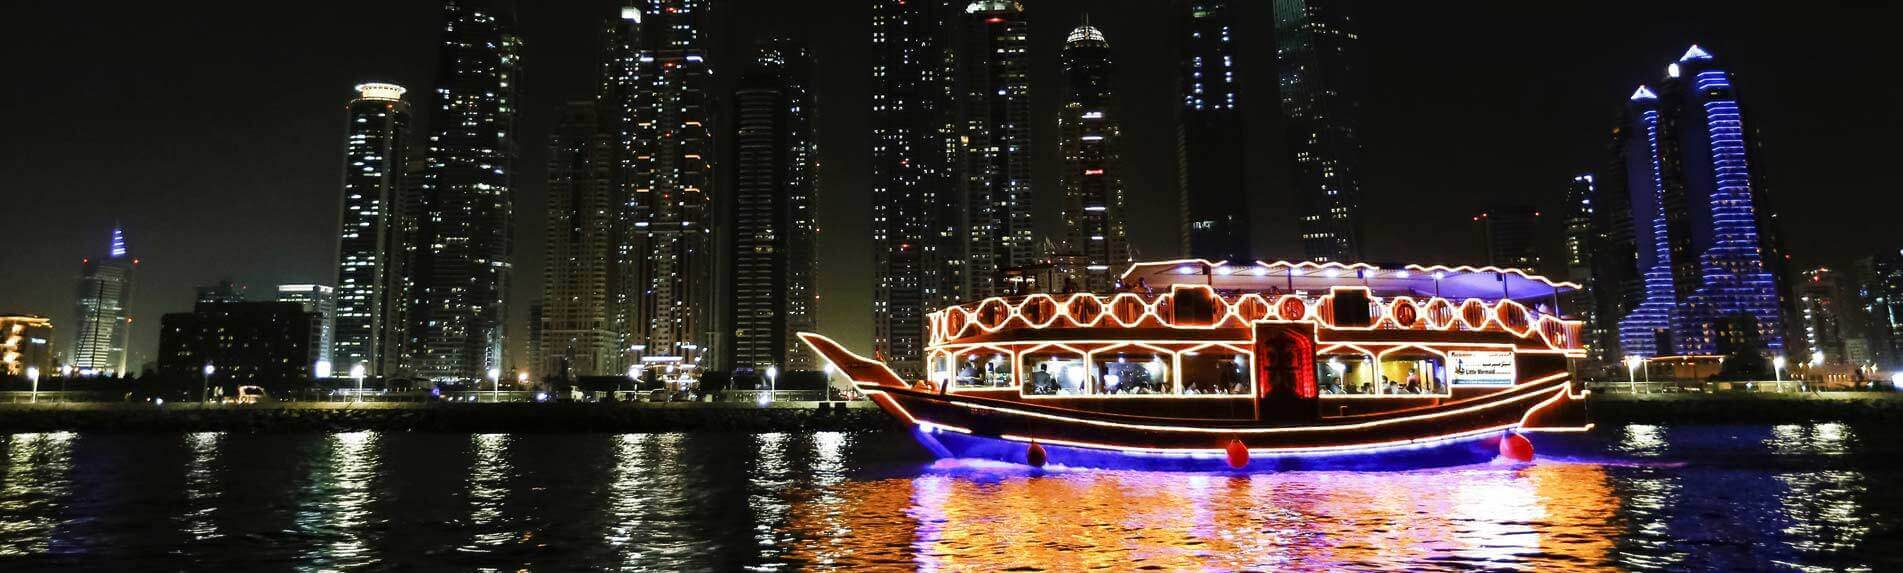 New-Year-Party-In-Dubai-Marina